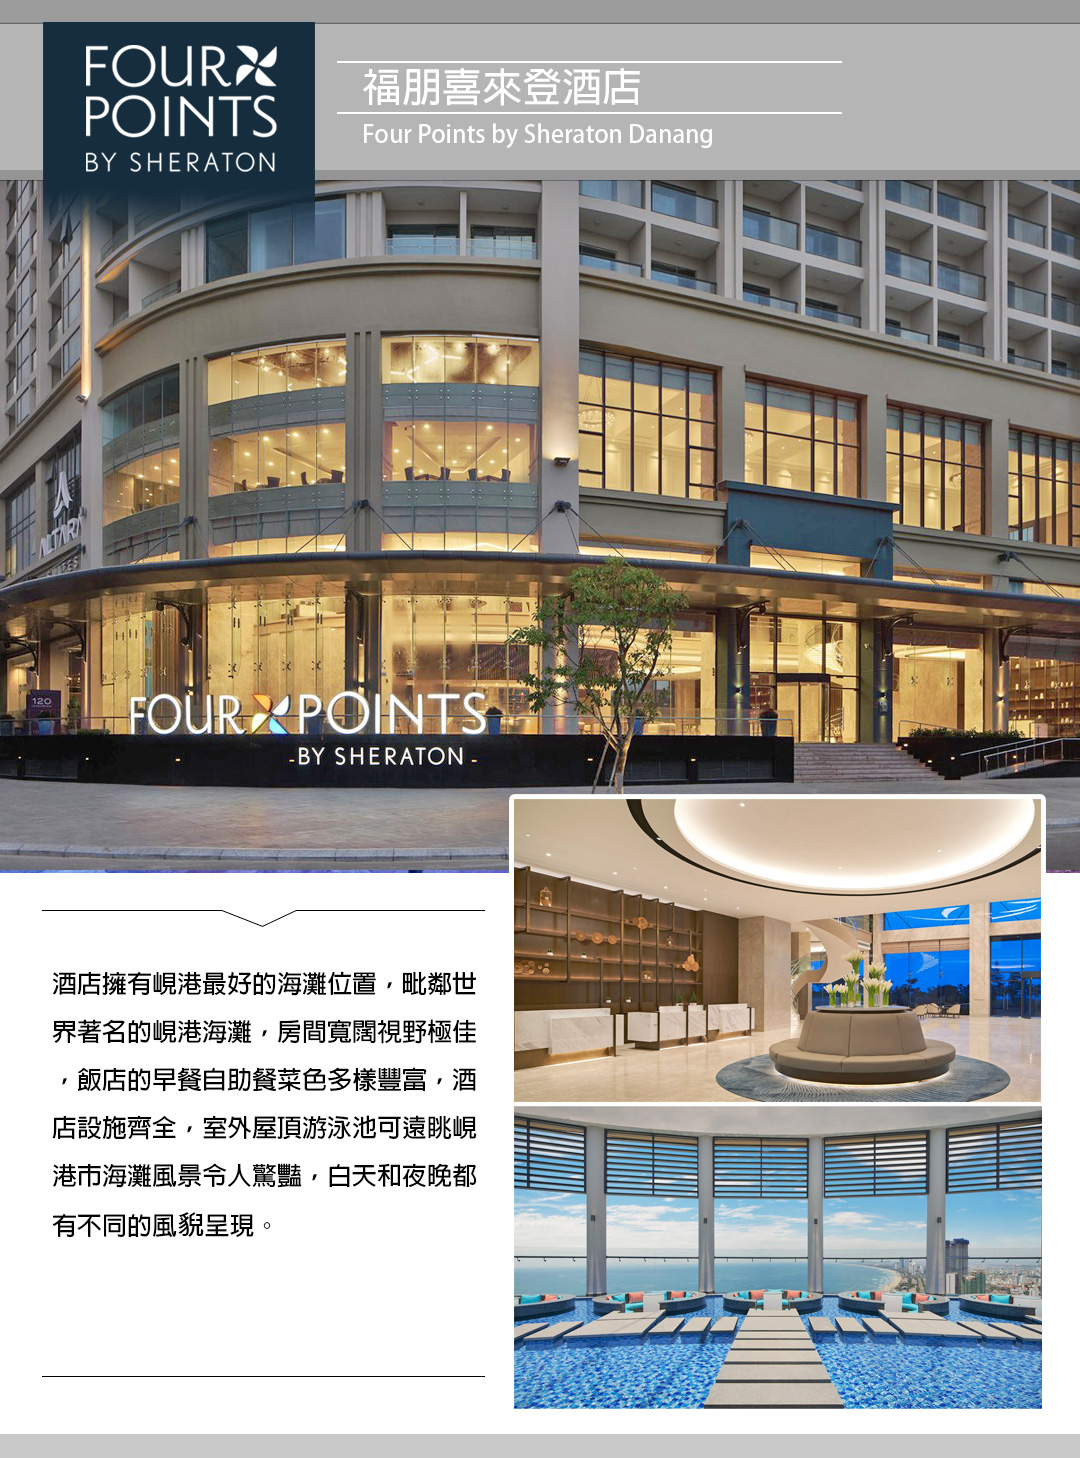 中越峴港- Four Points by Sheraton Danang